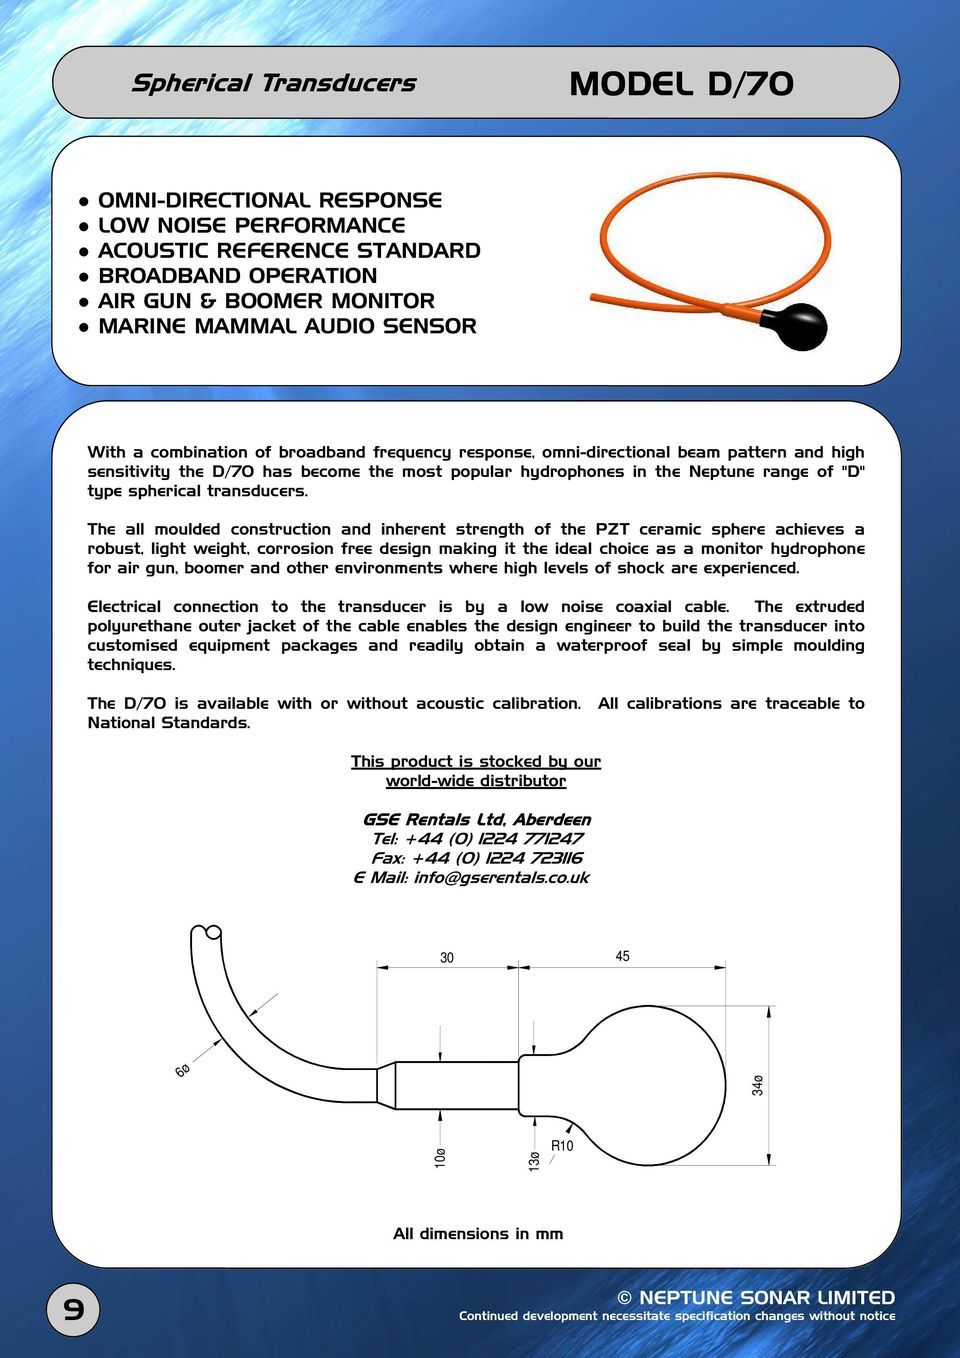 Transducer Product Catalogue Pdf 25 Khz Ultrasound Electronics And Electrical Engineering The All Moulded Construction Inherent Strength Of Pzt Ceramic Sphere Achieves A Robust